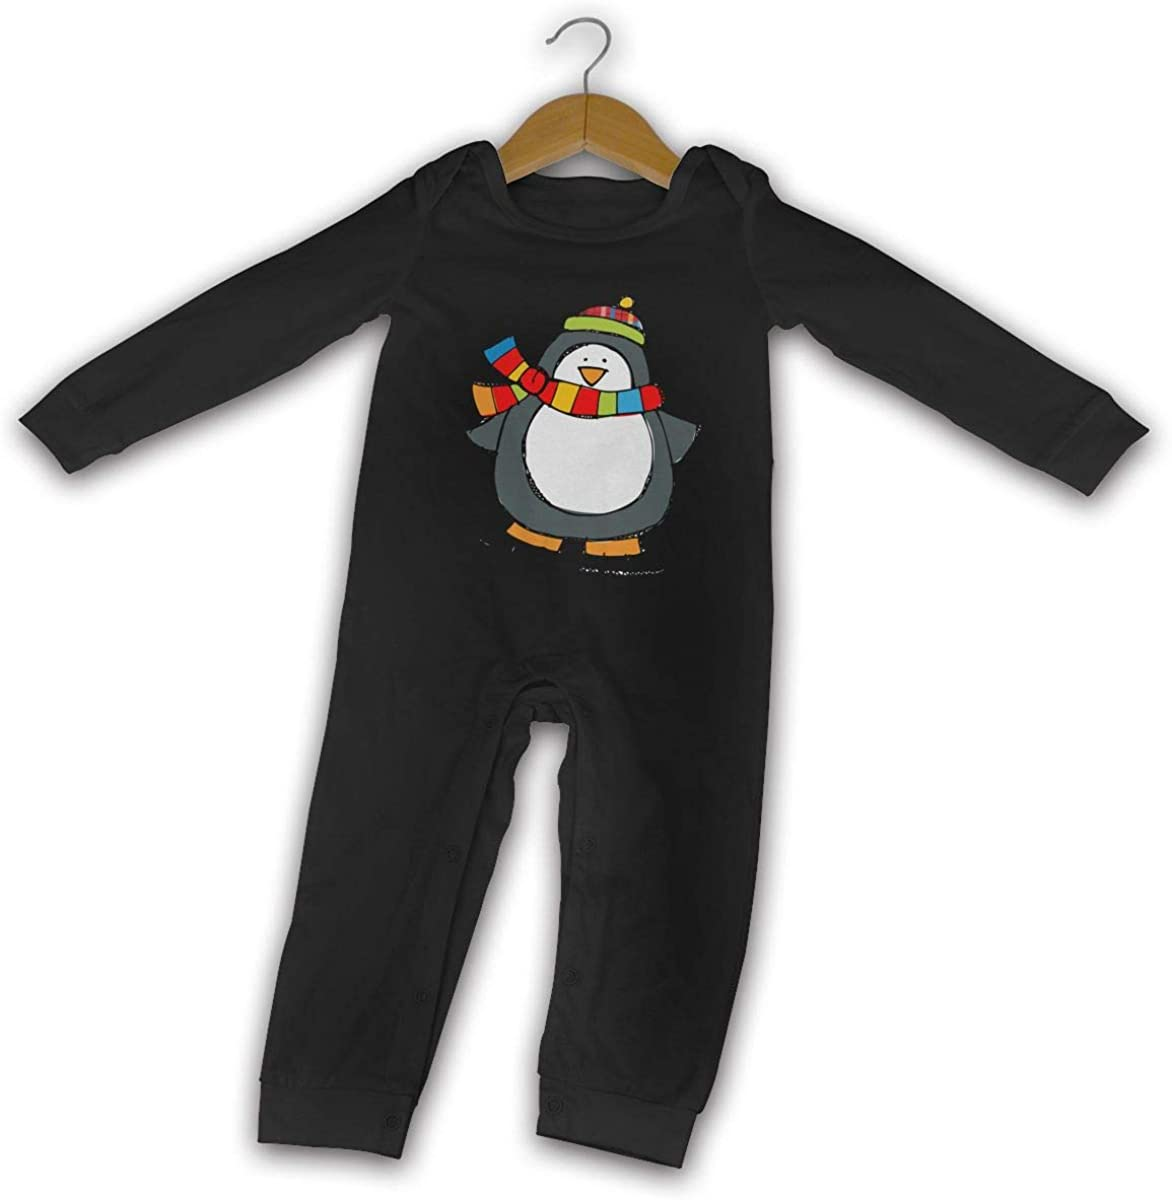 YELTY6F Fall Winter Clipart Printed Baby Bodysuit Long Sleeve Outfits Black